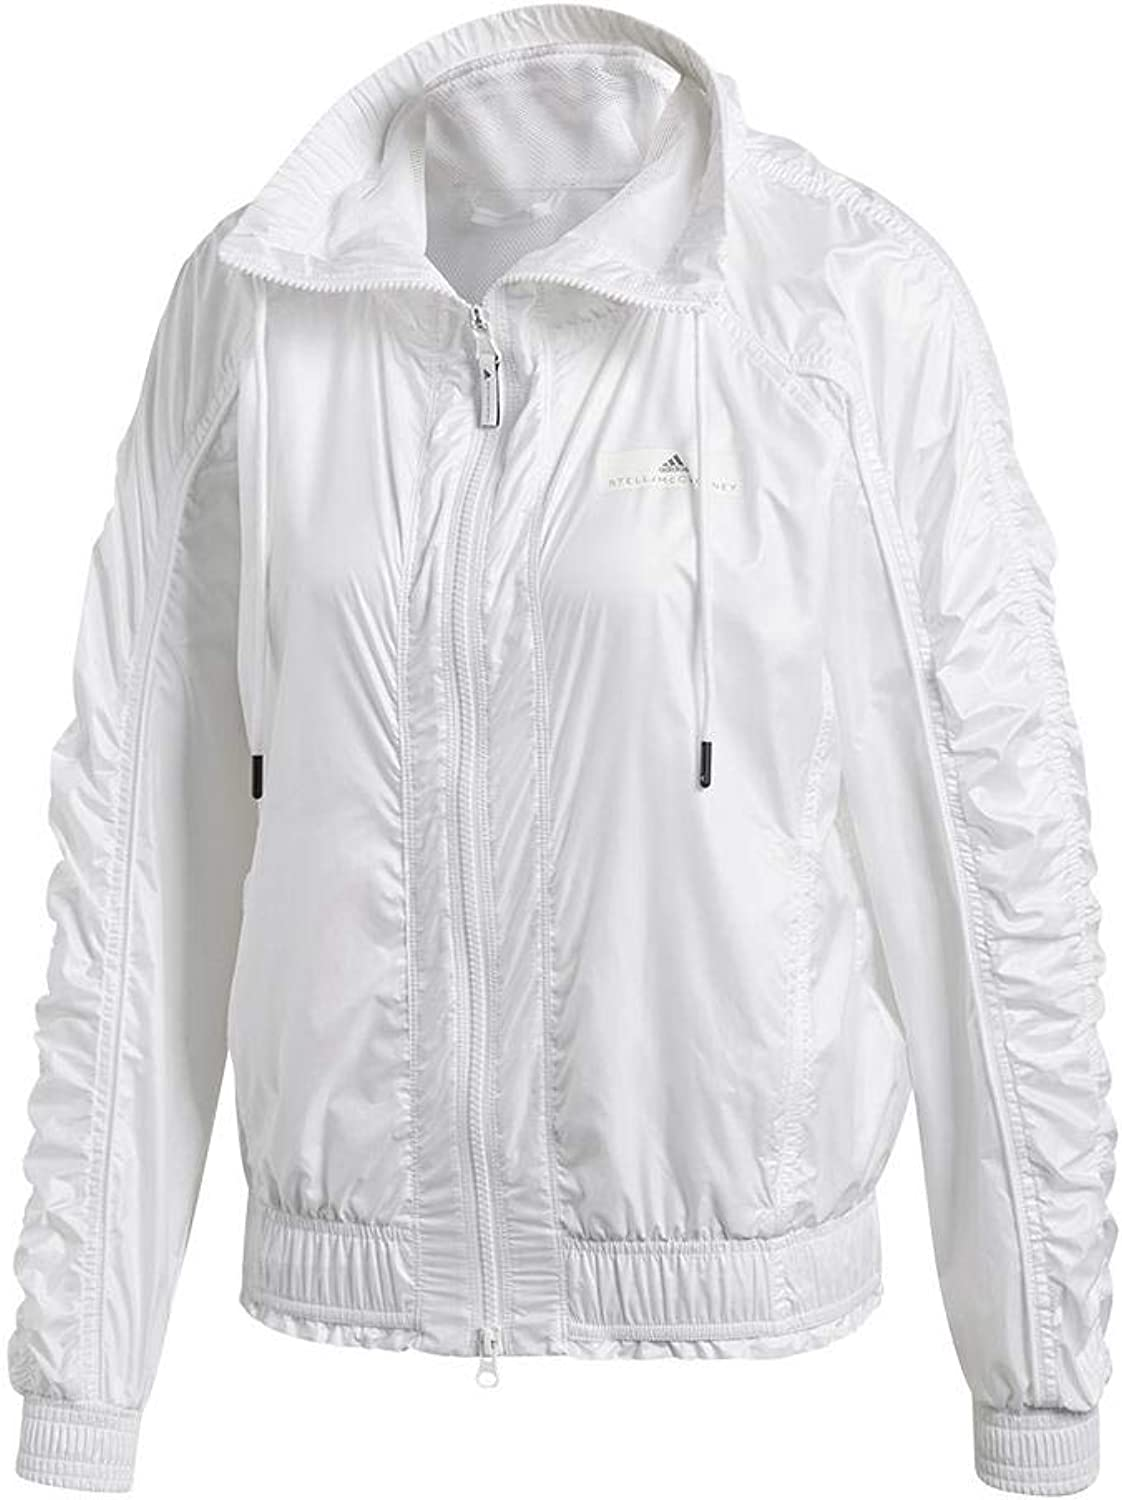 Adidas by Stella McCartney Barricade Jacket Women's Tennis